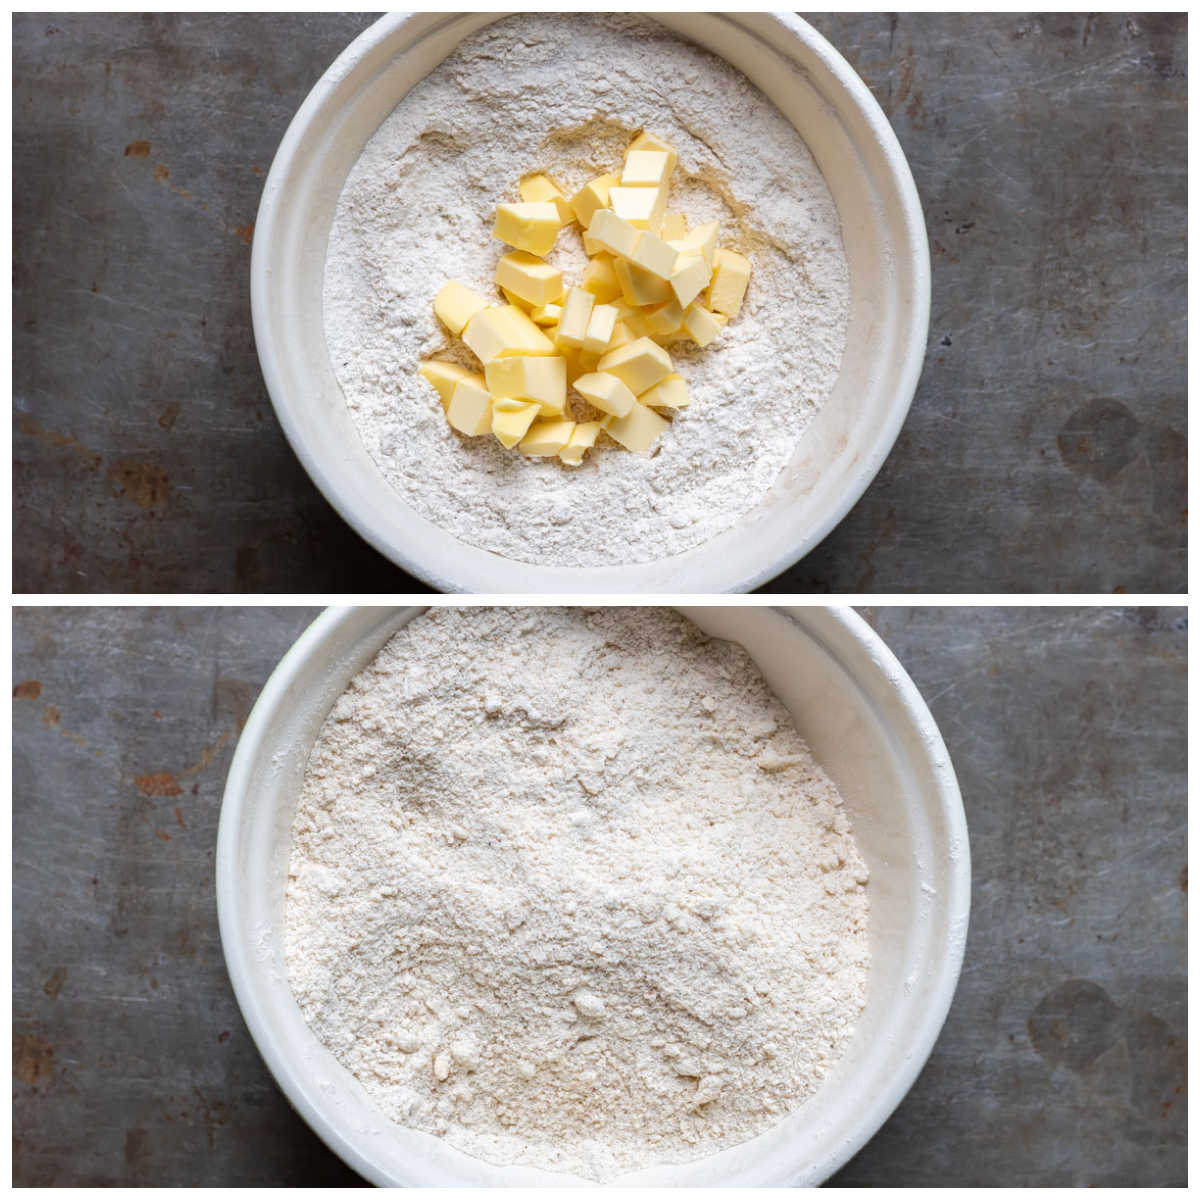 Bowl of dry ingredients with butter rubbed in.